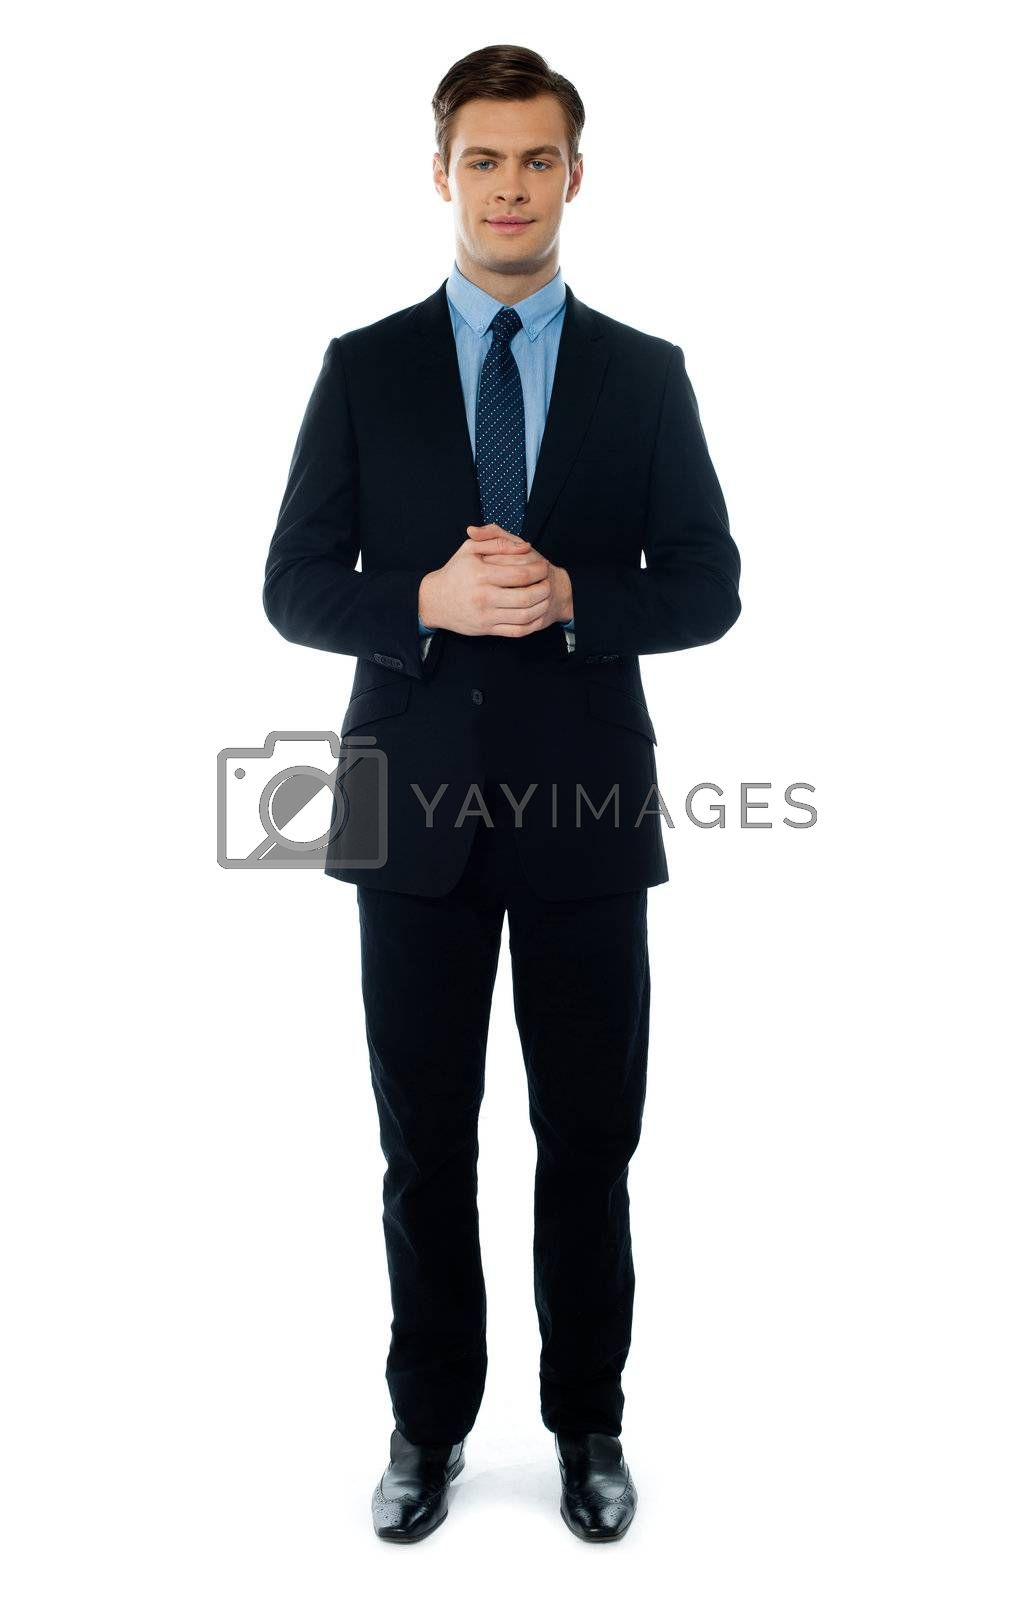 Handsome businessperson posing in front of camera